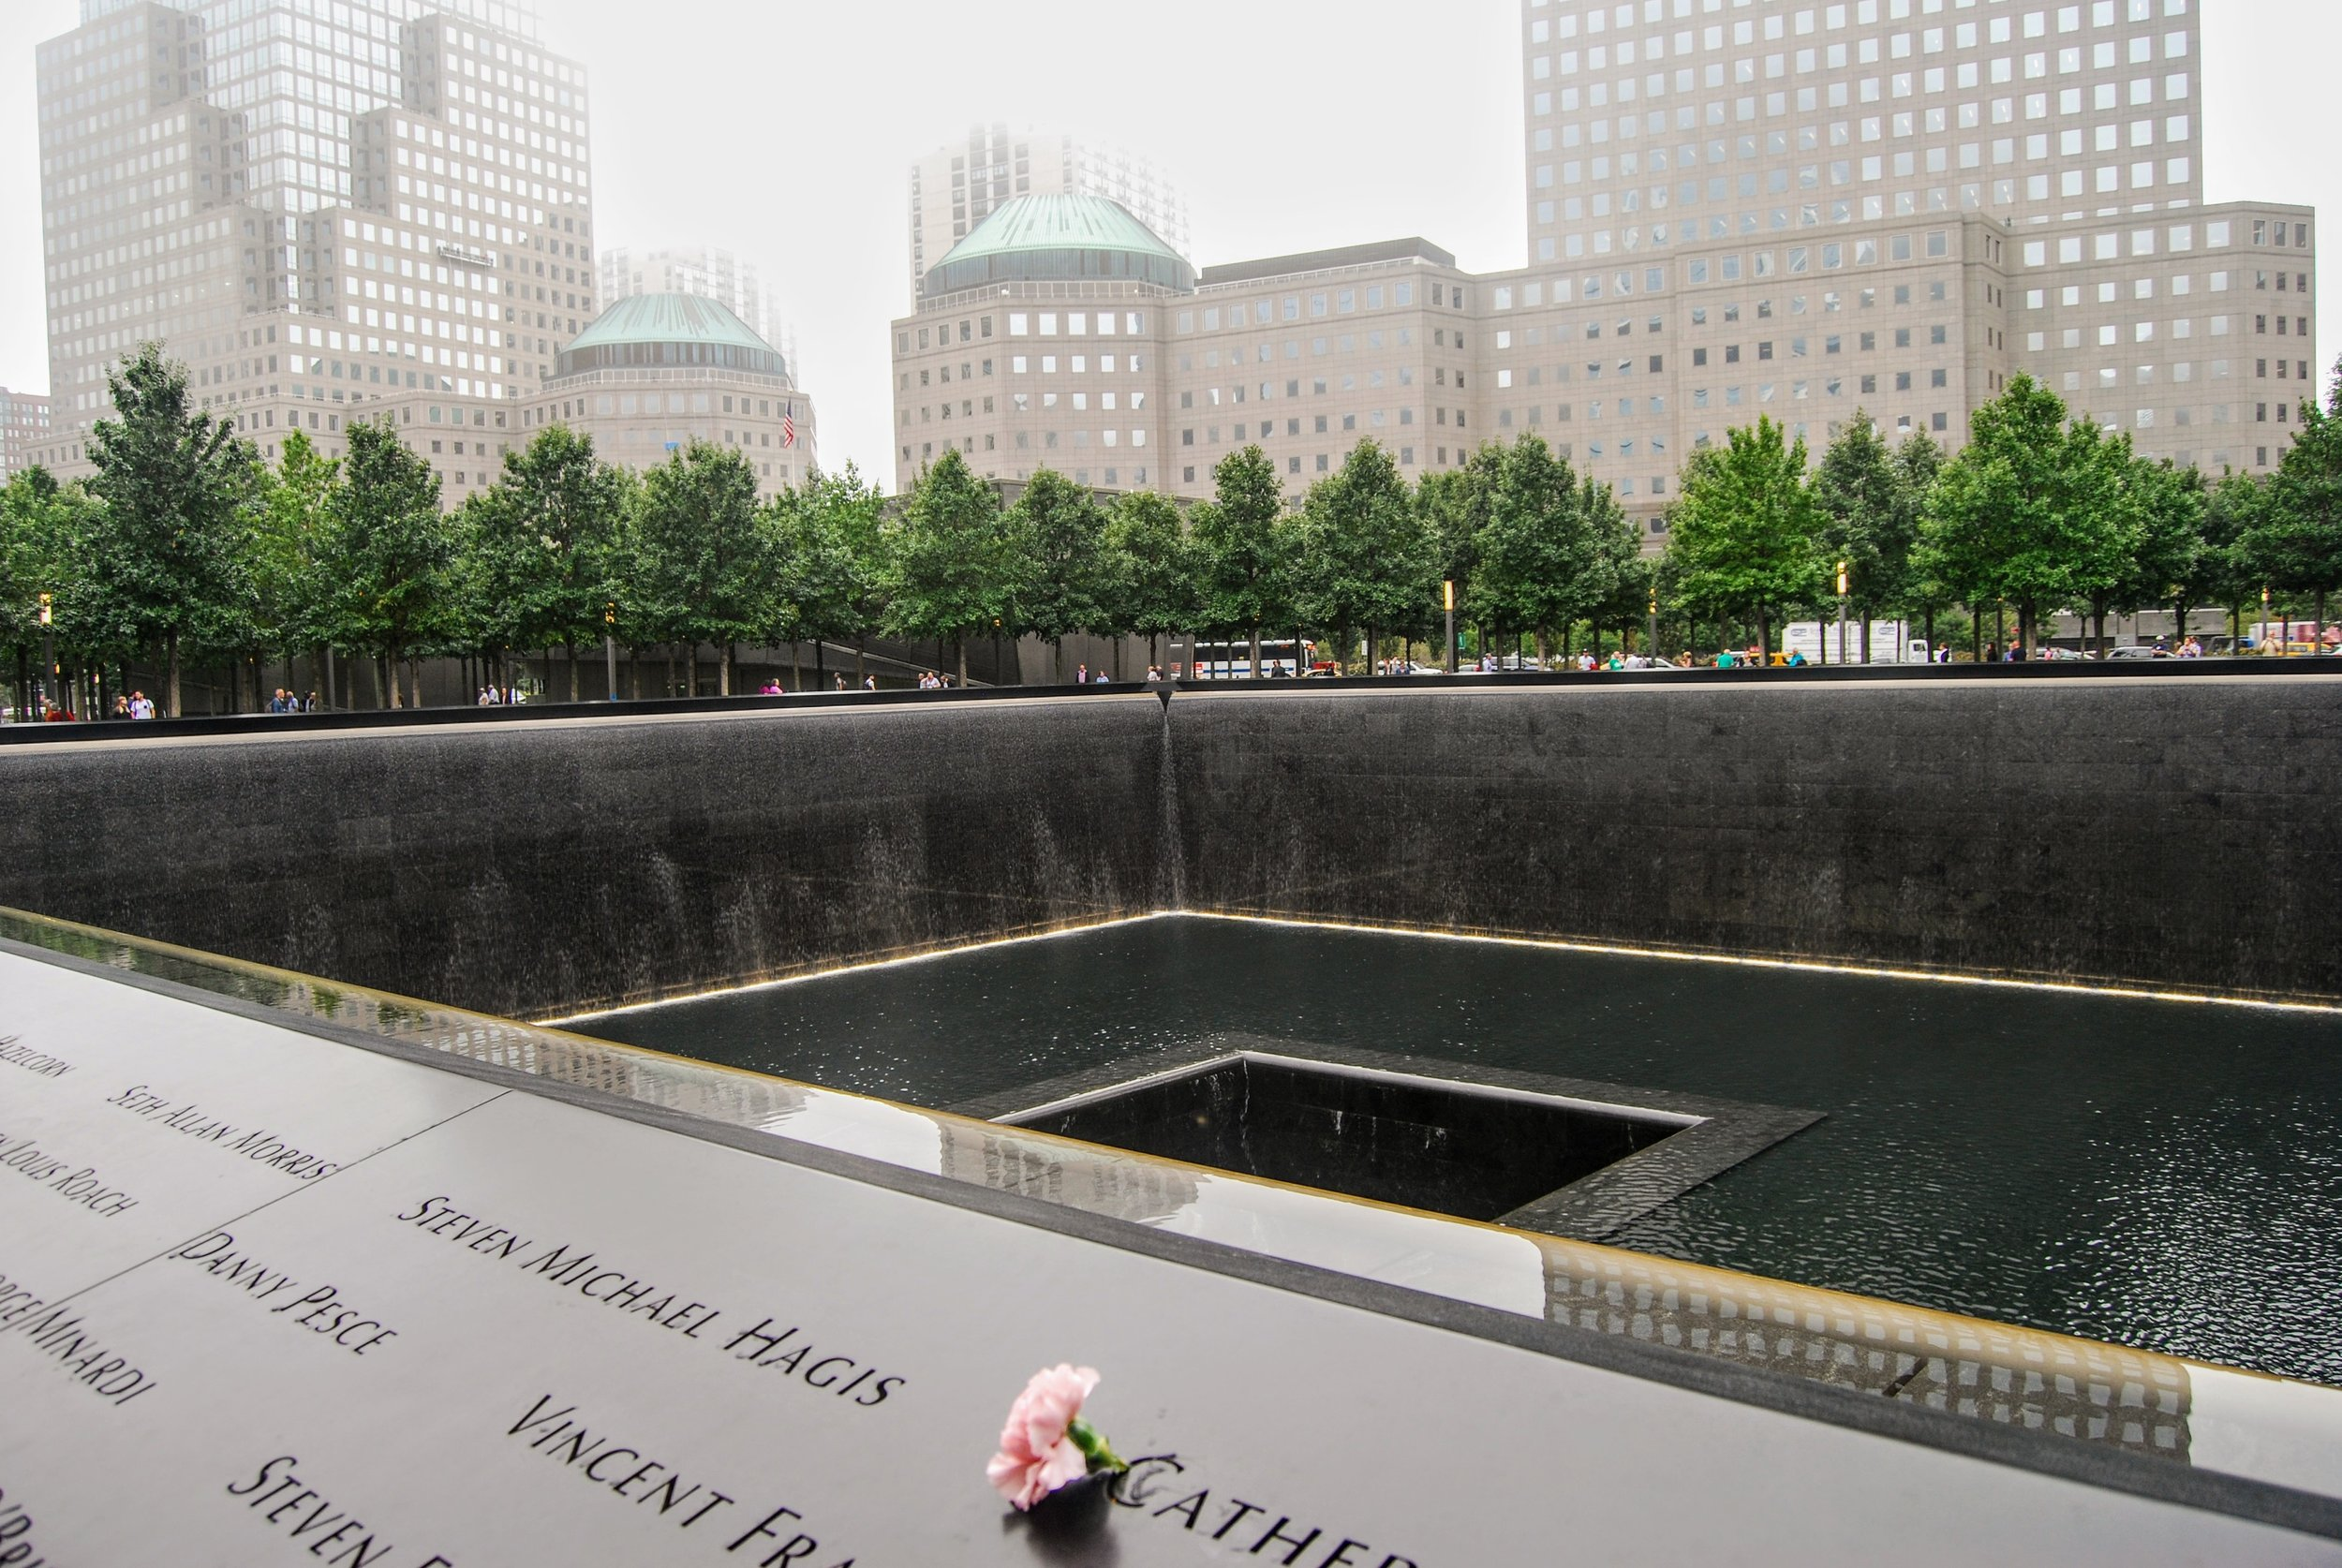 The 9/11 Memorial next to the Museum. The two waterfalls encapsulate the original footprints of the Twin Towers and each victim's name is inscribed on the surrounding walls.